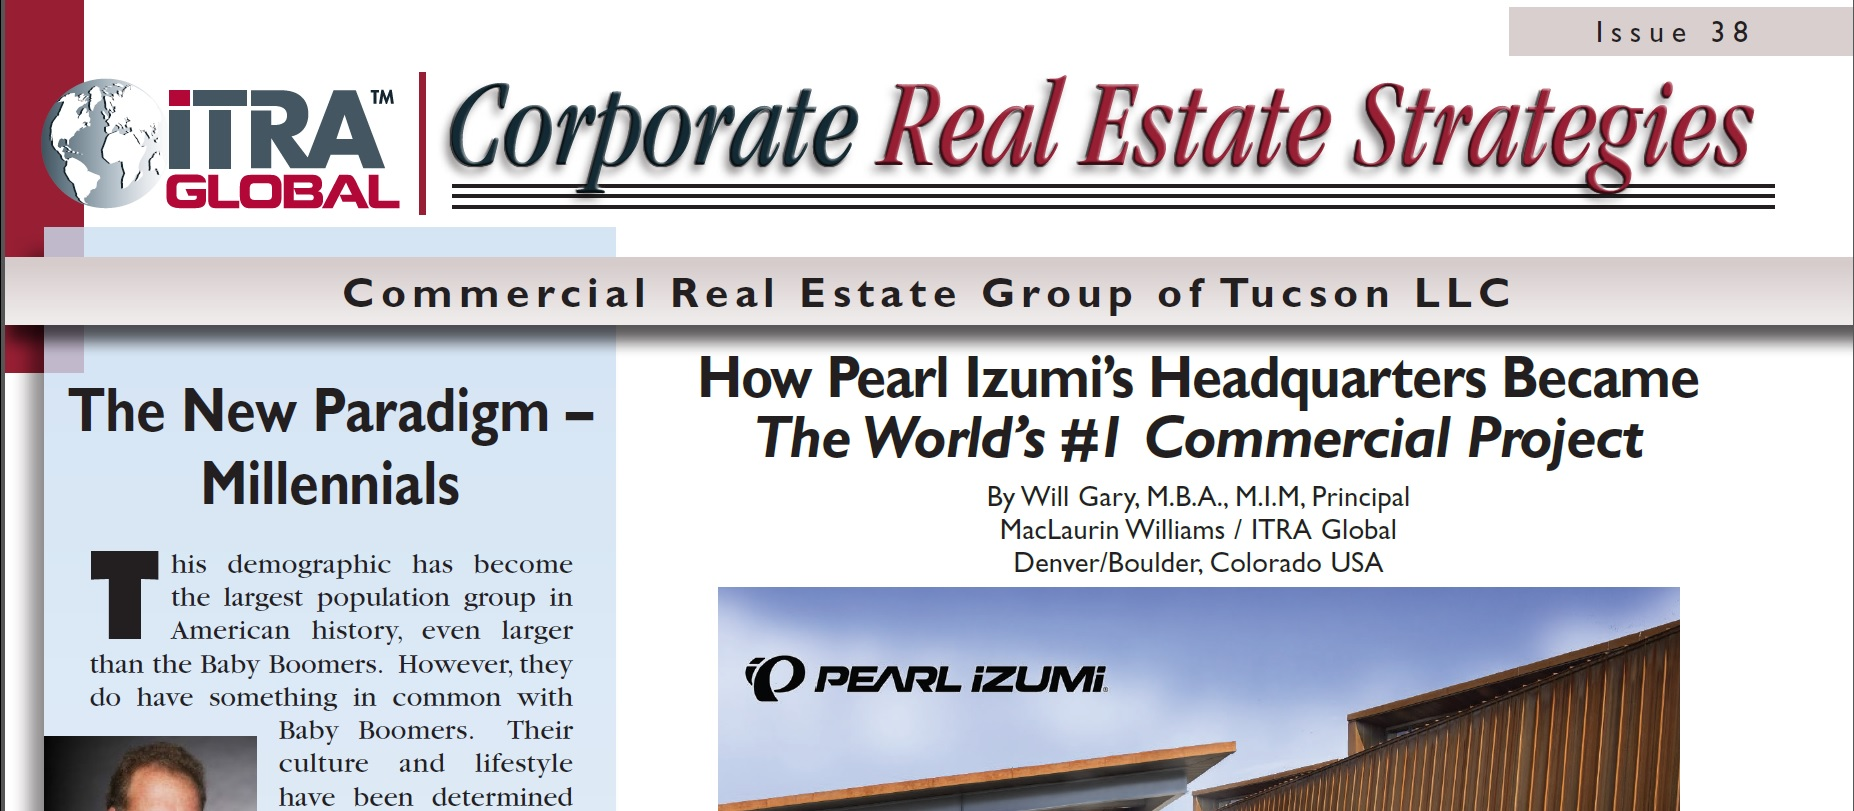 ITRA Global-CREG Tucson newsletter number 38